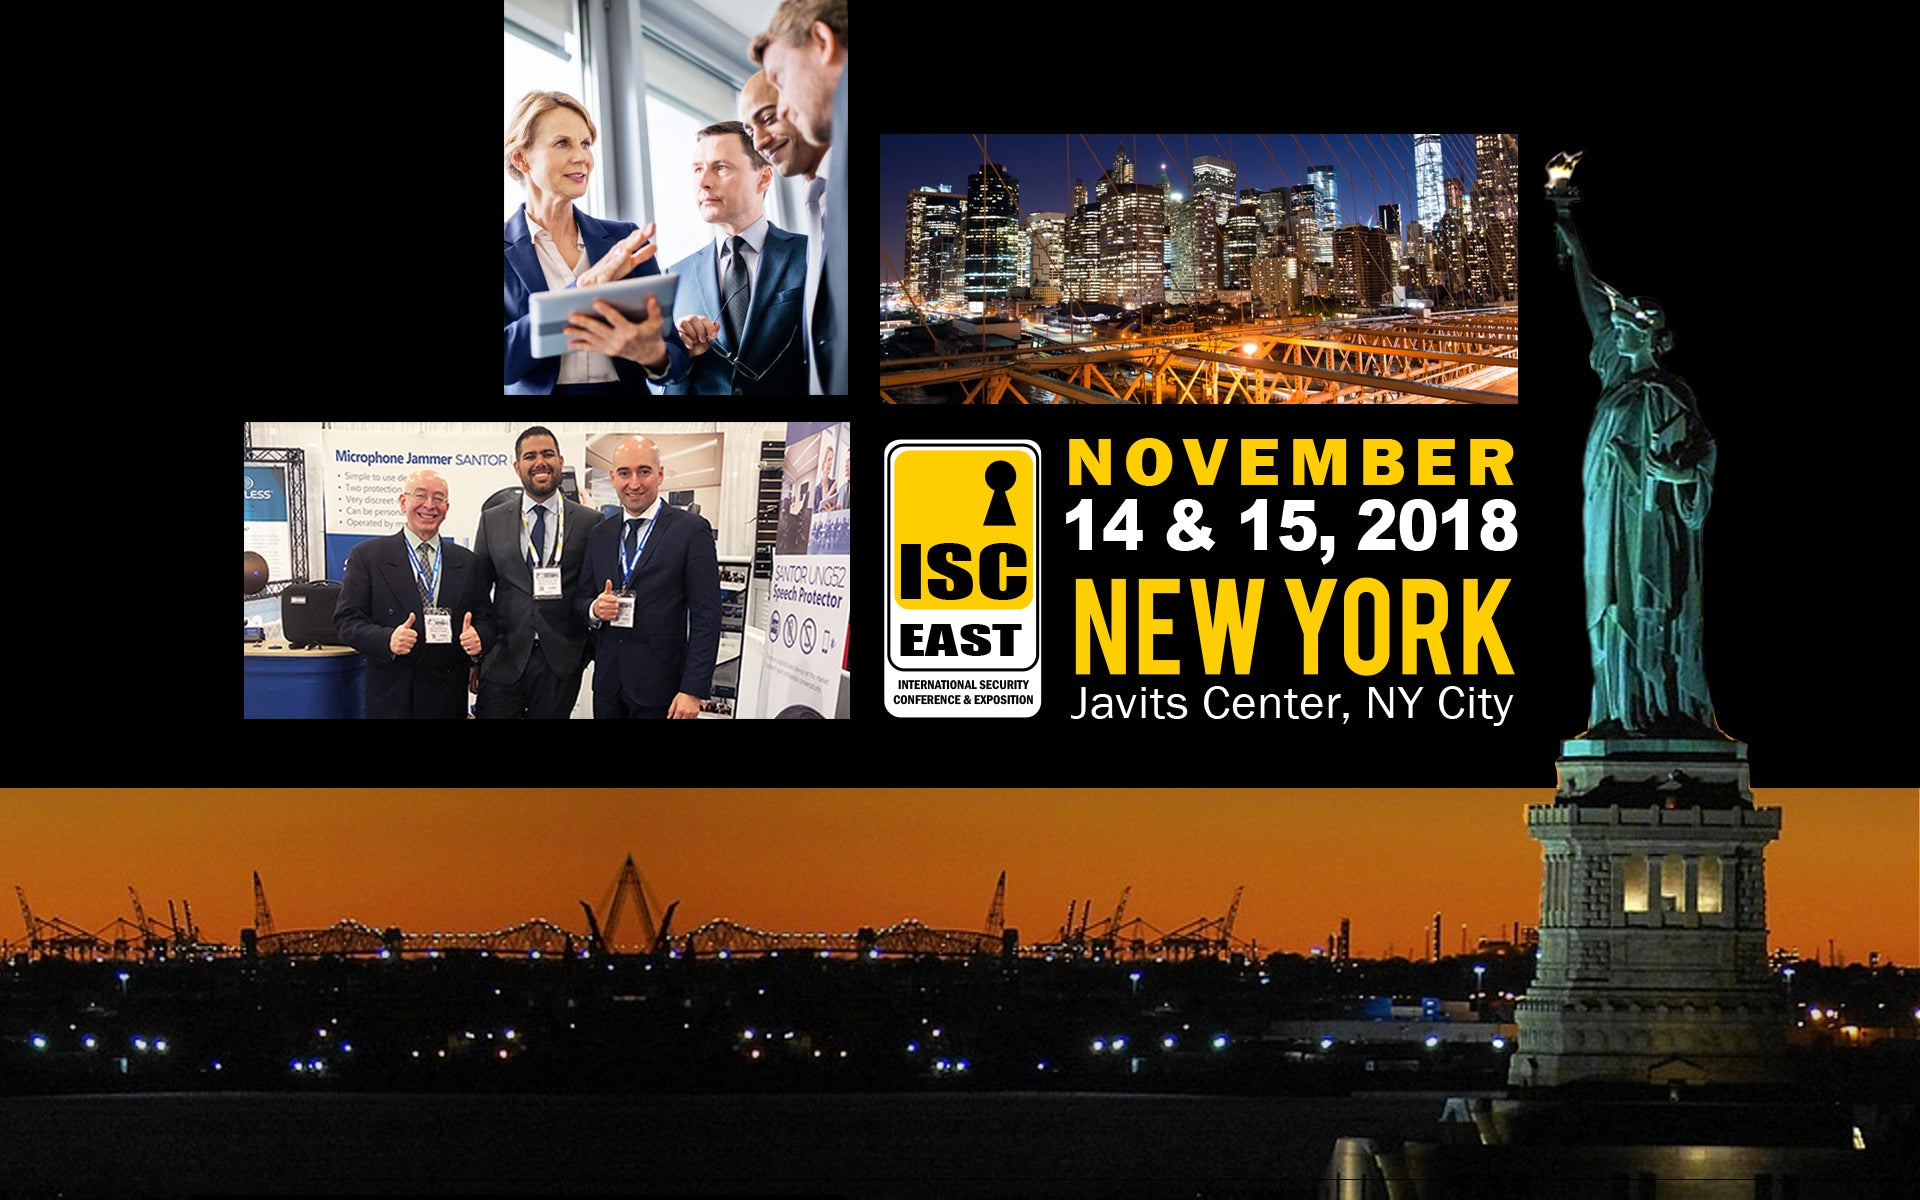 Santor at ISC East NYC 2018